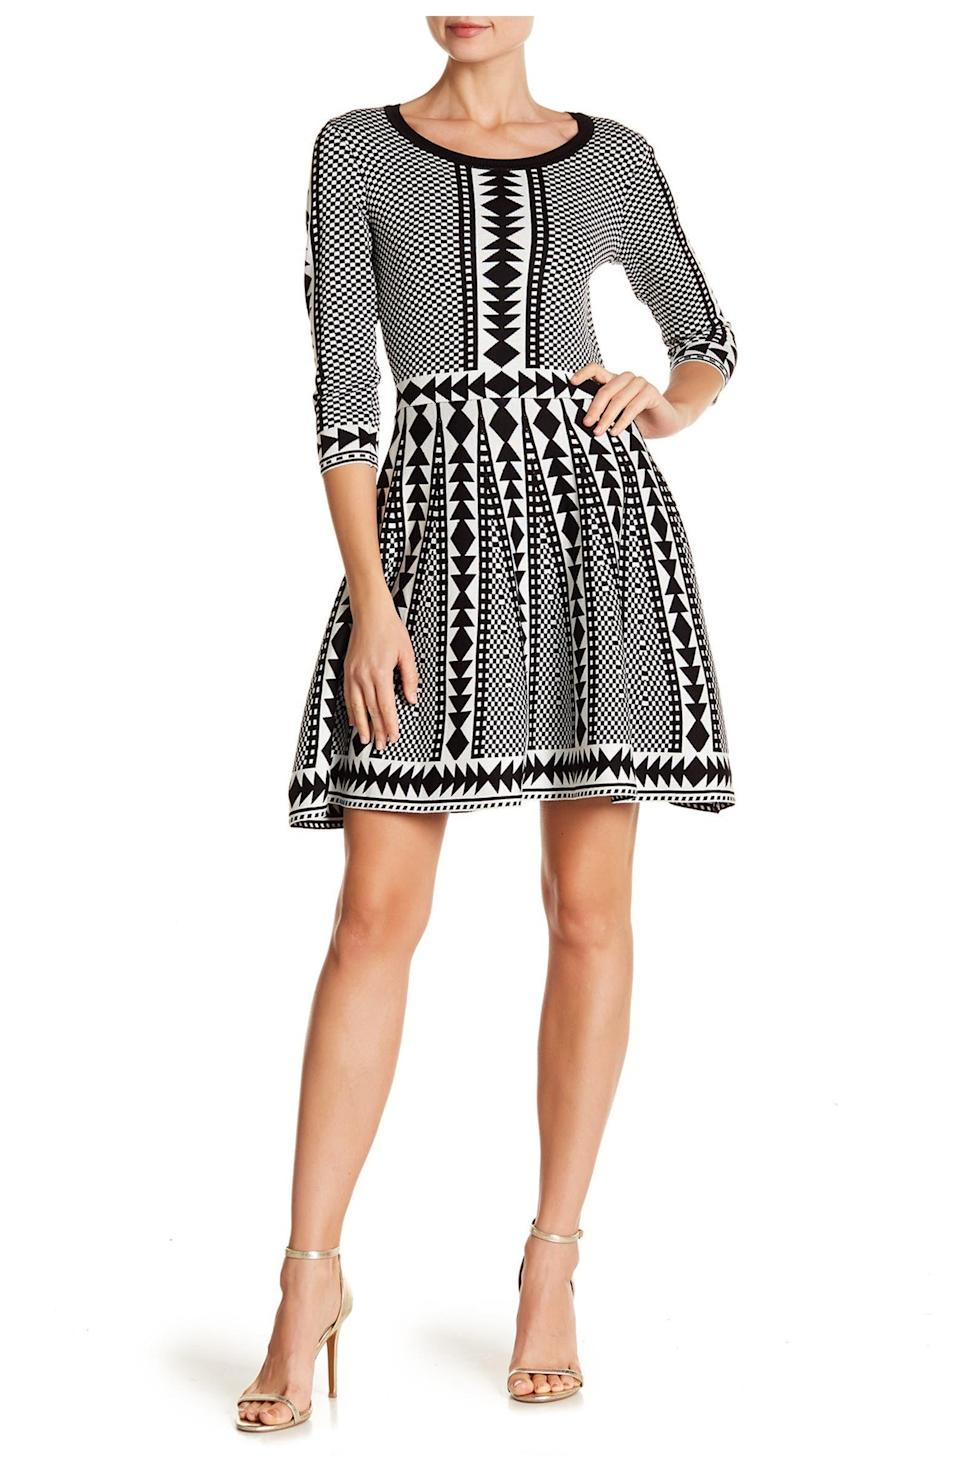 """<h2>Nina Leonard Geometric Print Sweater Dress</h2><br>With so many sheath-like, midi-length sweater dresses on the market right now, this dress really stands out. With a cute A-line mini skirt and an abstract print all over, it's no wonder it's so highly rated. <br><br><strong>The Hype:</strong> 4.5 out of 5 stars and 403 reviews on <a href=""""https://www.nordstromrack.com/s/nina-leonard-geometric-print-sweater-dress/5987029"""" rel=""""nofollow noopener"""" target=""""_blank"""" data-ylk=""""slk:NordstromRack.com"""" class=""""link rapid-noclick-resp"""">NordstromRack.com</a><br><br><strong>What They're Saying:</strong> """"All I can say is wow! This dress is amazing. So flattering. Makes the waist look smaller. I am 5'4 and 157 lbs. This dress is true to size. I am not tall, so the dress fits right above the knee. I'm also a 36D and the MEDIUM fit perfect. I got the black and white one. It stands out just right. But, if you rather blend in, do not get this color:)"""" — NayeliC, NordstromRack.com reviewer<br><br><br><strong>Nina Leonard</strong> Geometric Print Sweater Dress, $, available at <a href=""""https://go.skimresources.com/?id=30283X879131&url=https%3A%2F%2Fwww.nordstromrack.com%2Fs%2Fnina-leonard-geometric-print-sweater-dress%2F5987029"""" rel=""""nofollow noopener"""" target=""""_blank"""" data-ylk=""""slk:Nordstrom Rack"""" class=""""link rapid-noclick-resp"""">Nordstrom Rack</a>"""